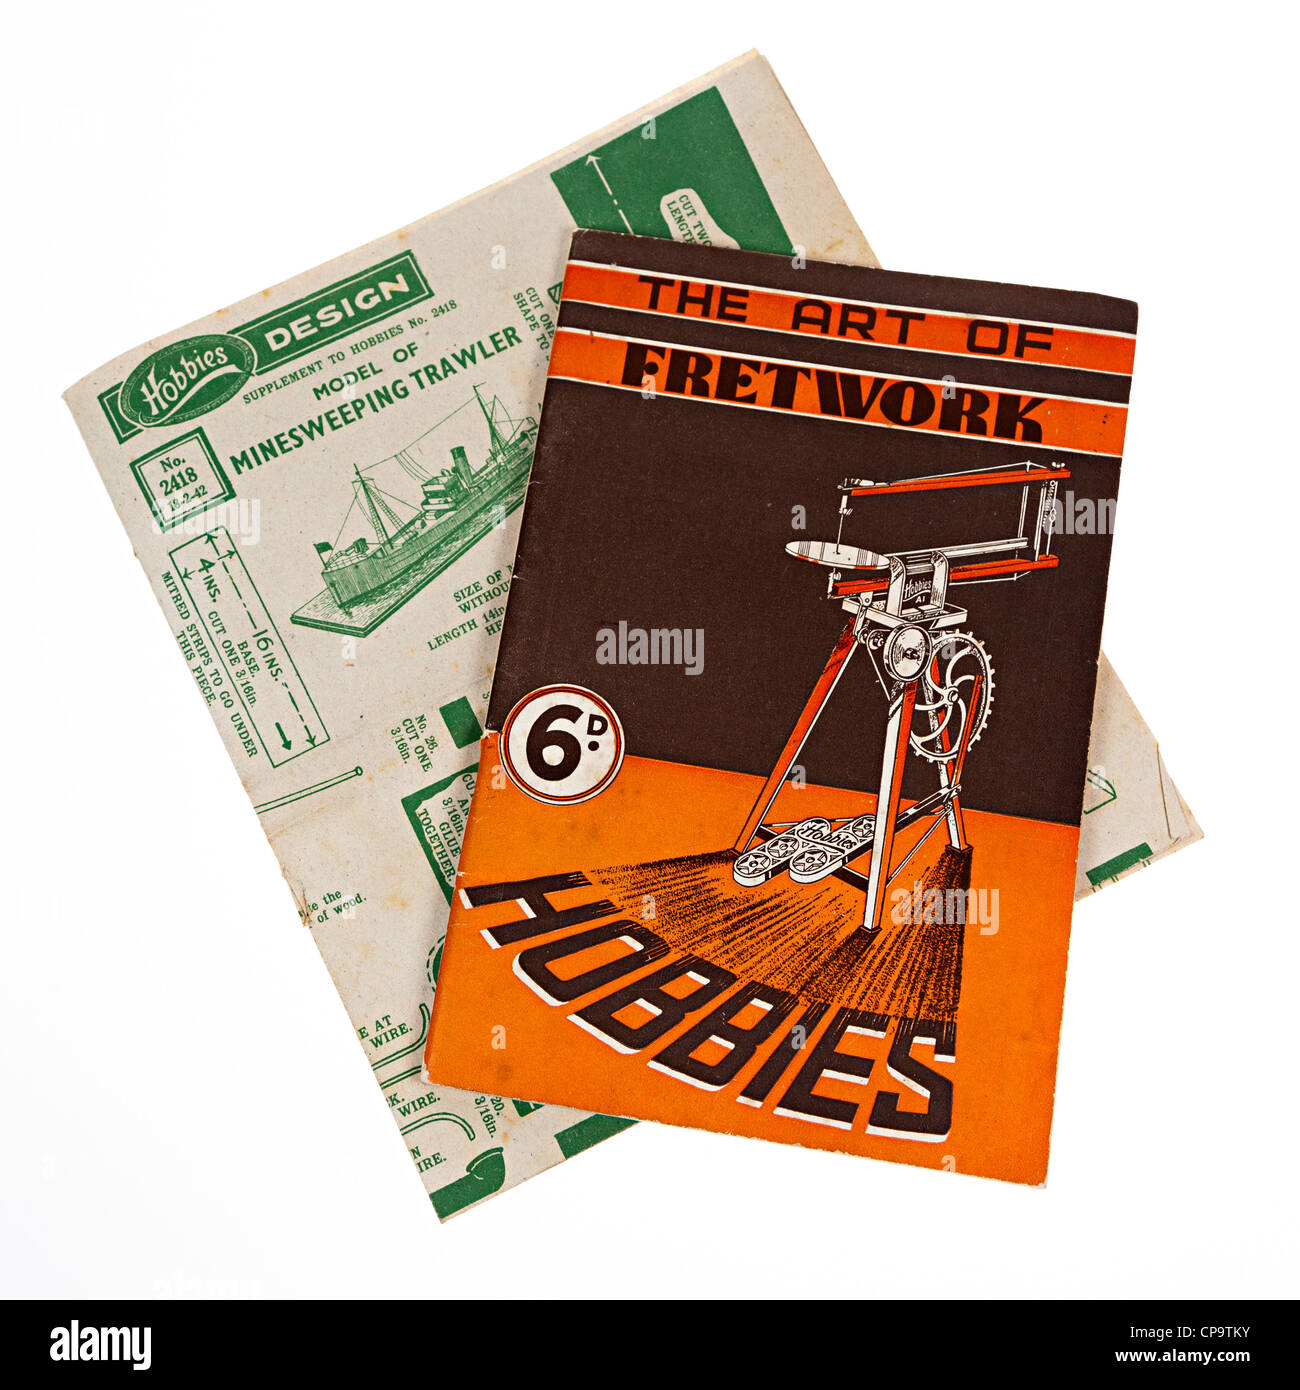 Fretwork hobbies book and plans, 1940s, UK - Stock Image